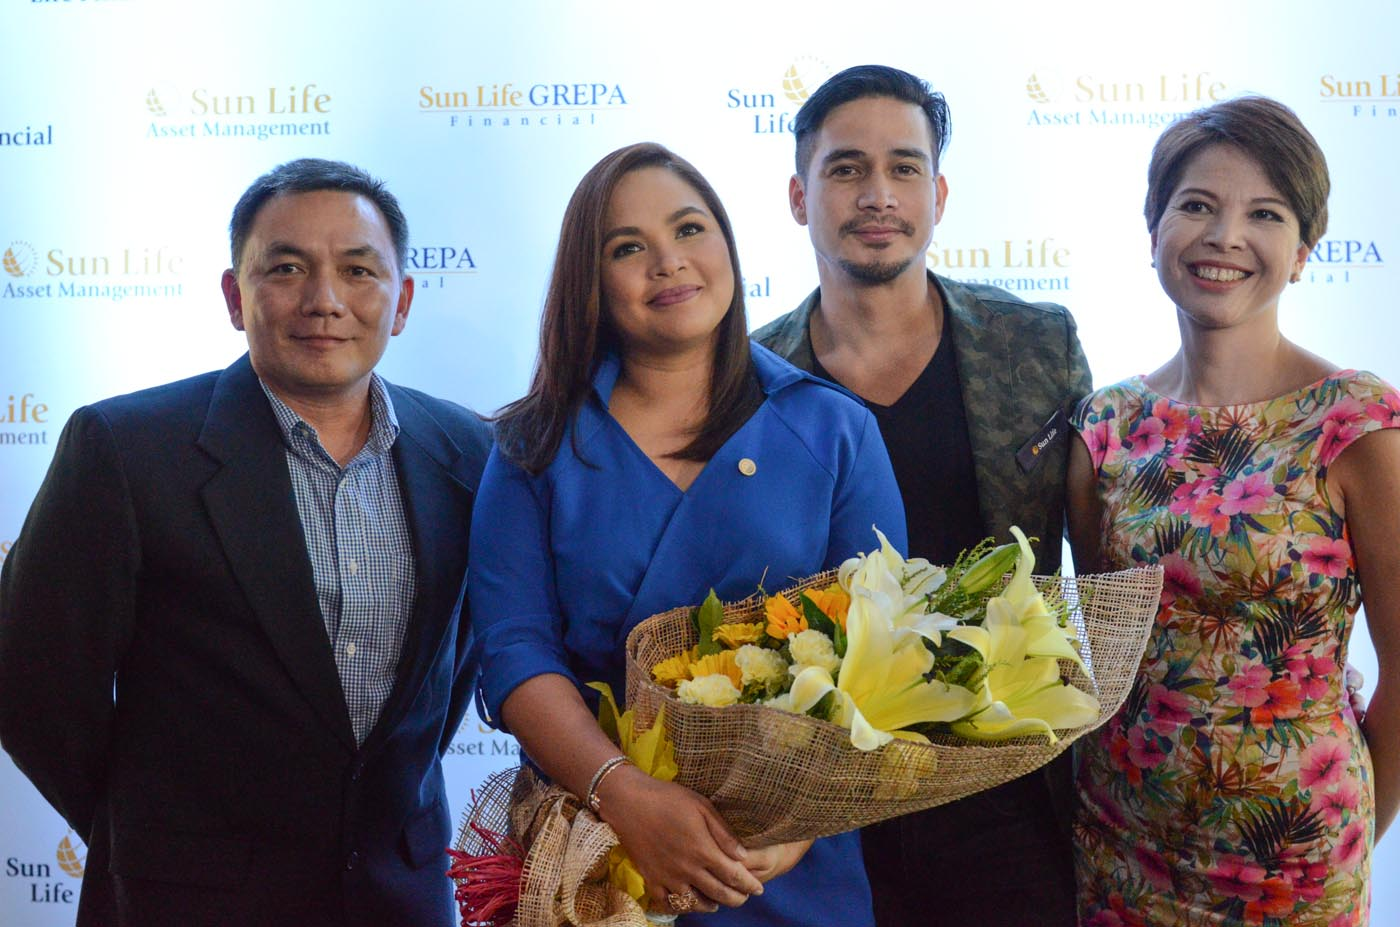 MONEY FOR LIFE. Judy Ann Santos-Agoncillo joins longtime Sun Life ambassador Piolo Pascual for the Money for Life campaign. The two stars are flanked by Gerry Tirona, Sun Life Grepa Financial, Inc. Marketing Head (left) and Mylene Daez-Lopa, Chief Marketing Officer for Sun Life of Canada (Philippines), Inc. (right). Photo by Alecs Ongcal/Rappler